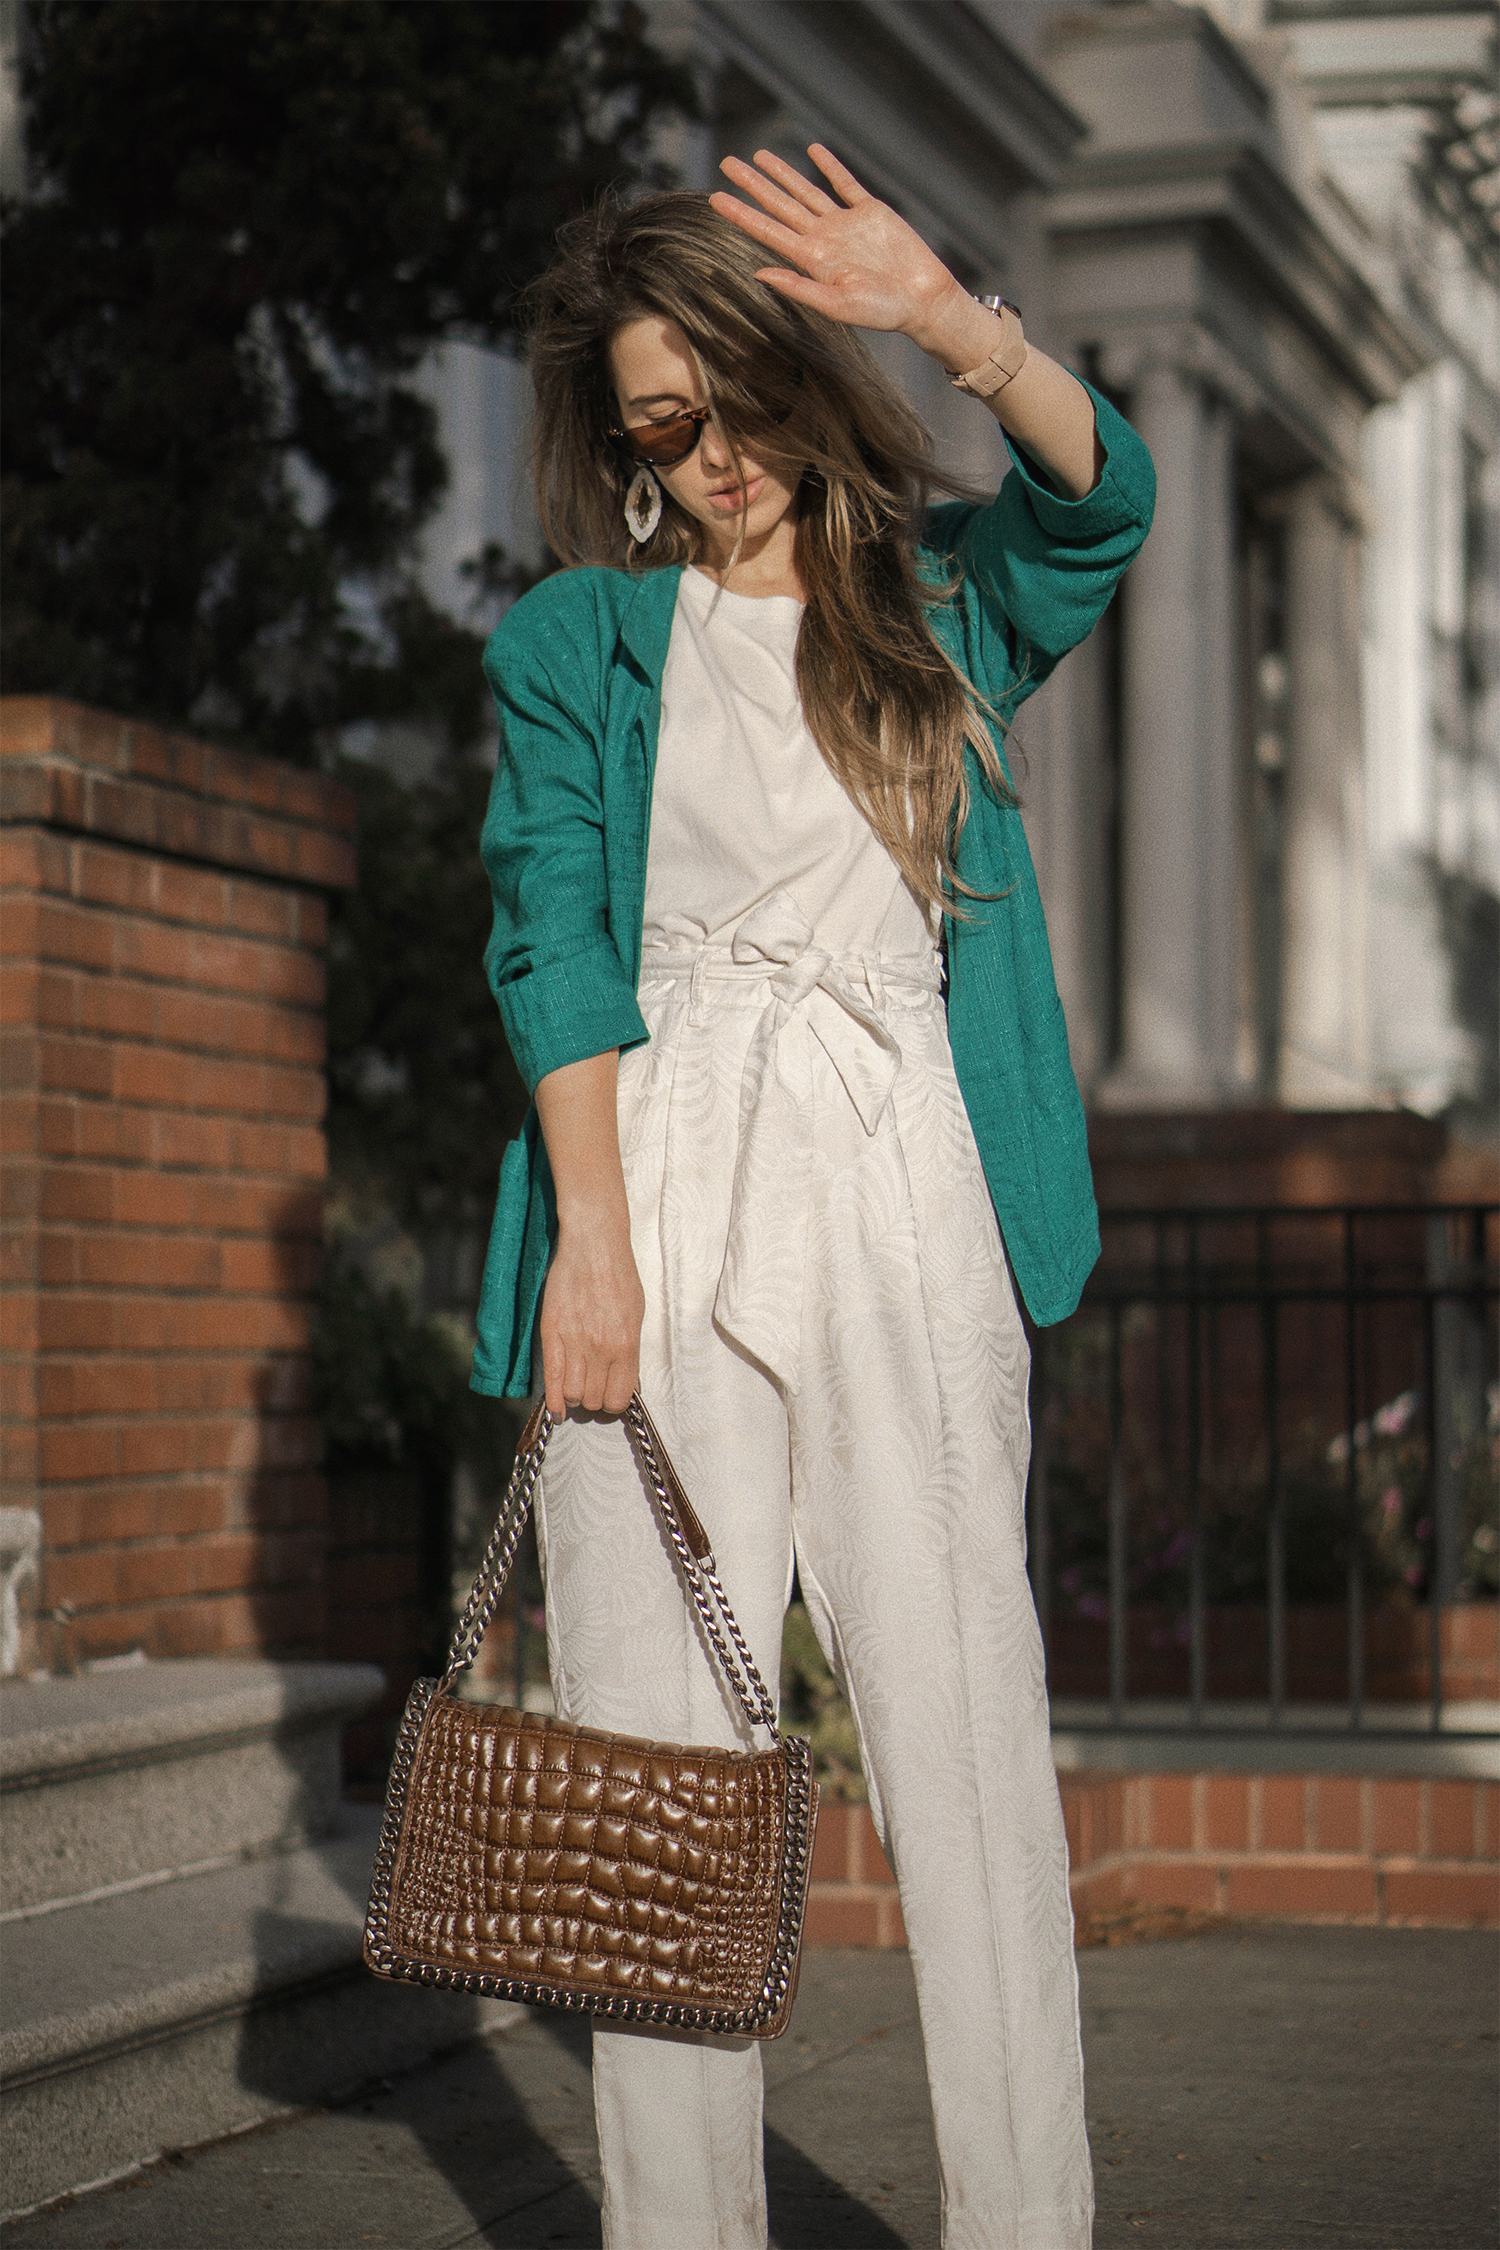 highwaisted_pants_green_jacket_thewhiteocean_lenajuice_03